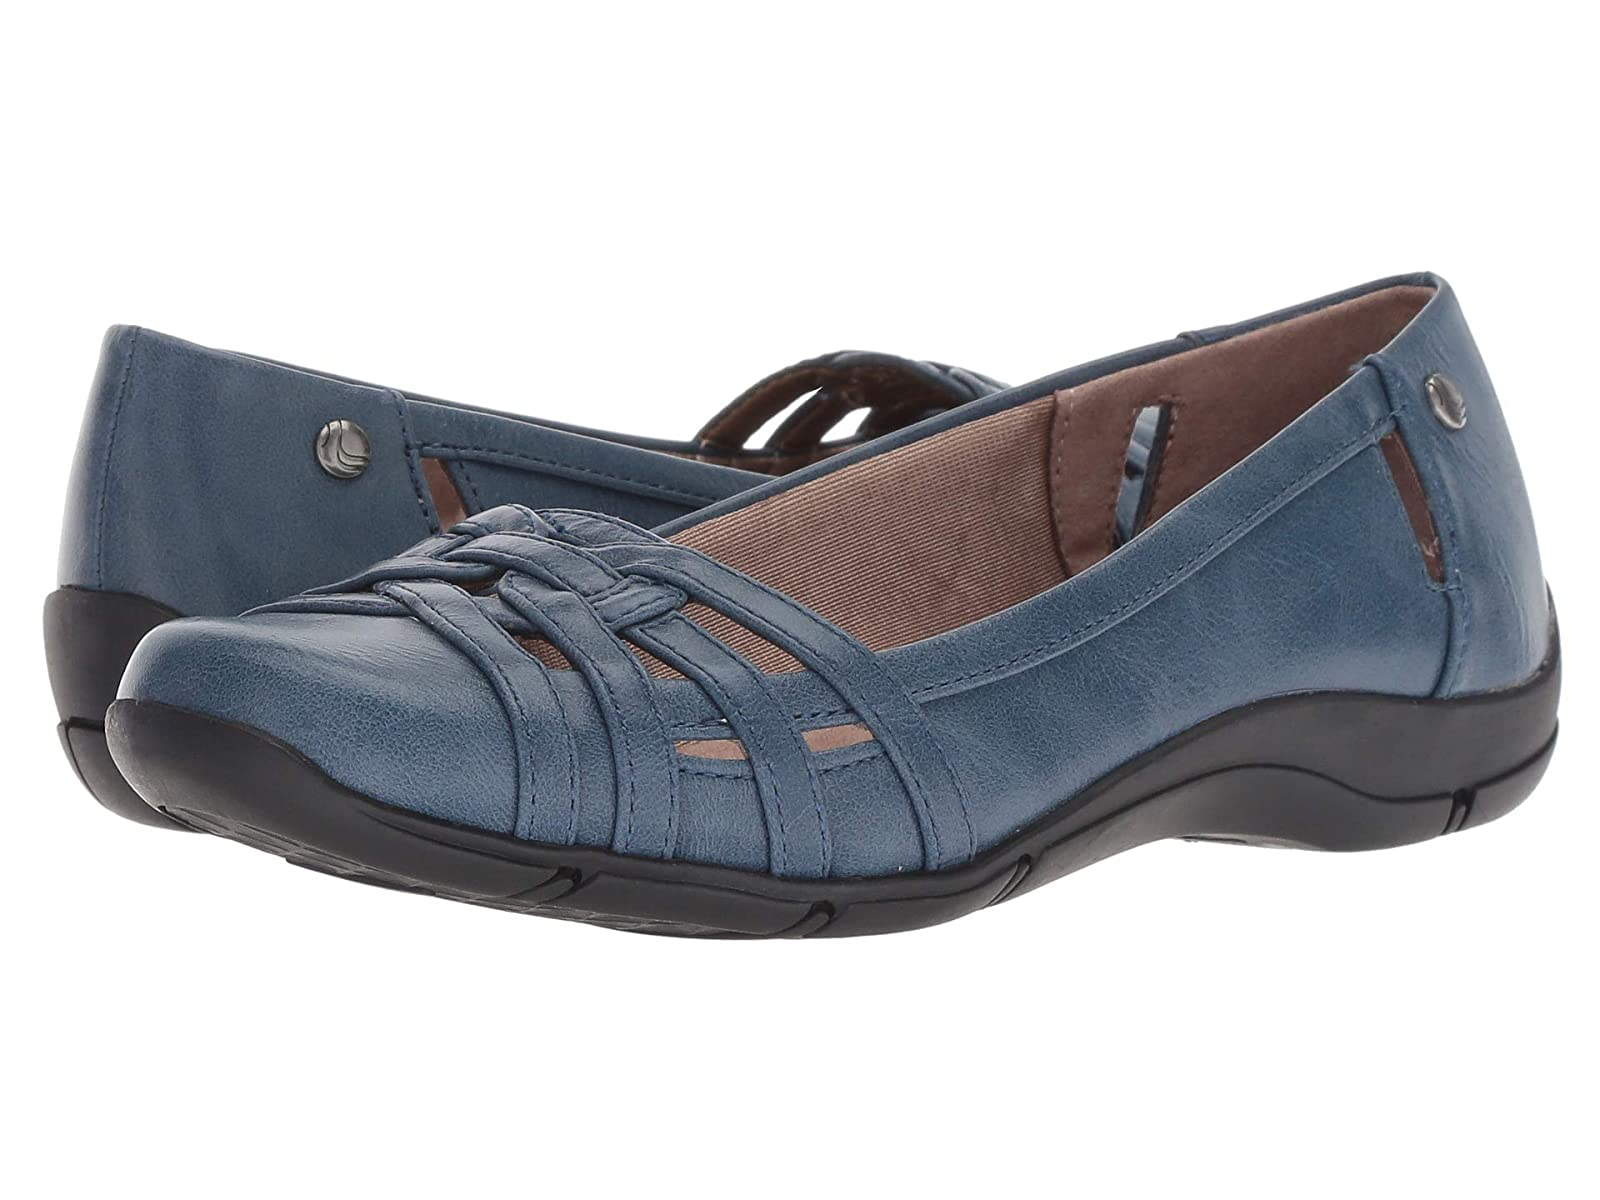 LifeStride DiverseCheap and distinctive eye-catching shoes